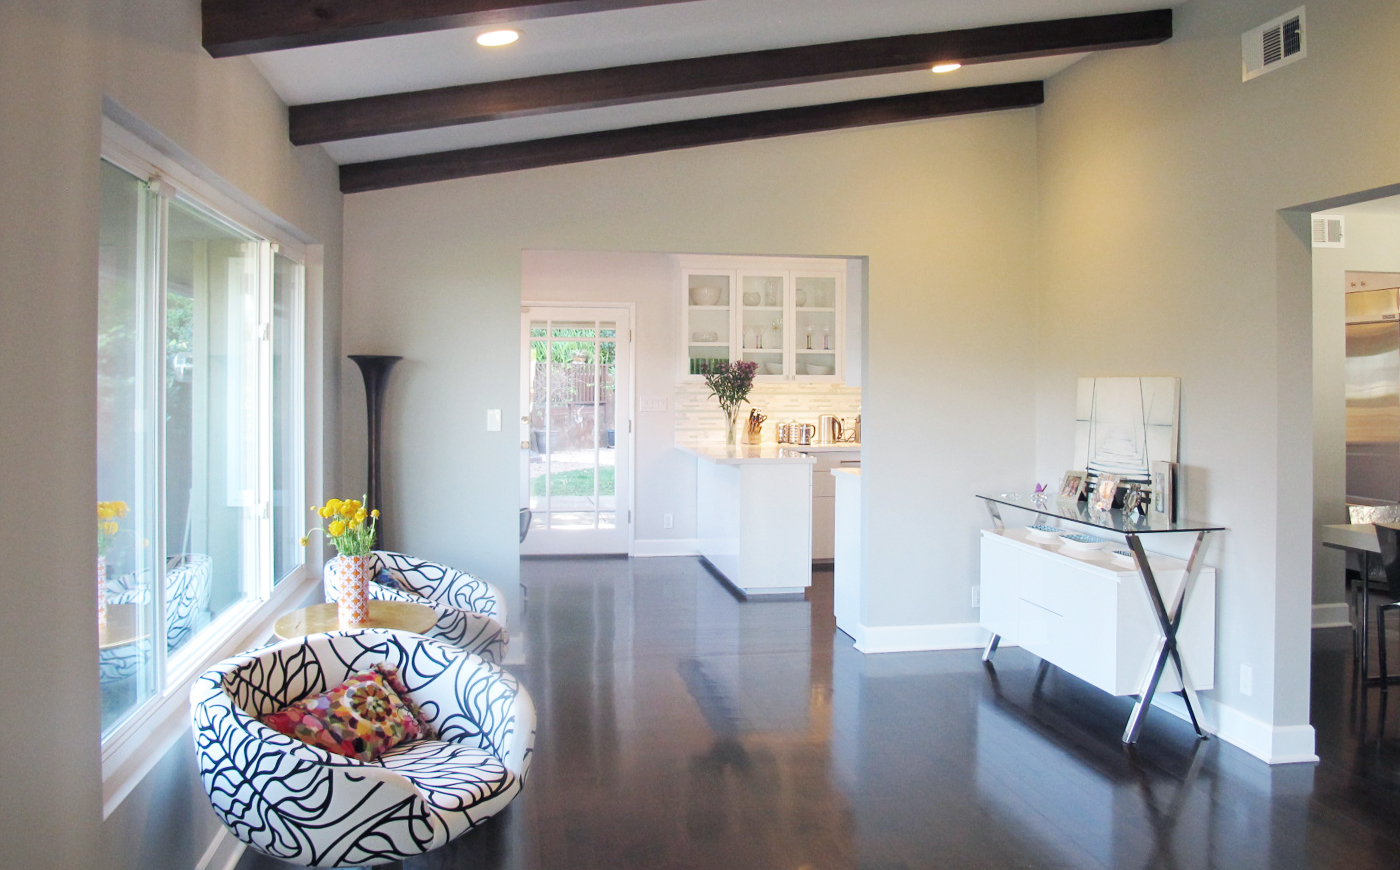 Wrightwood Drive Home Renovation - Studio City, CAView More